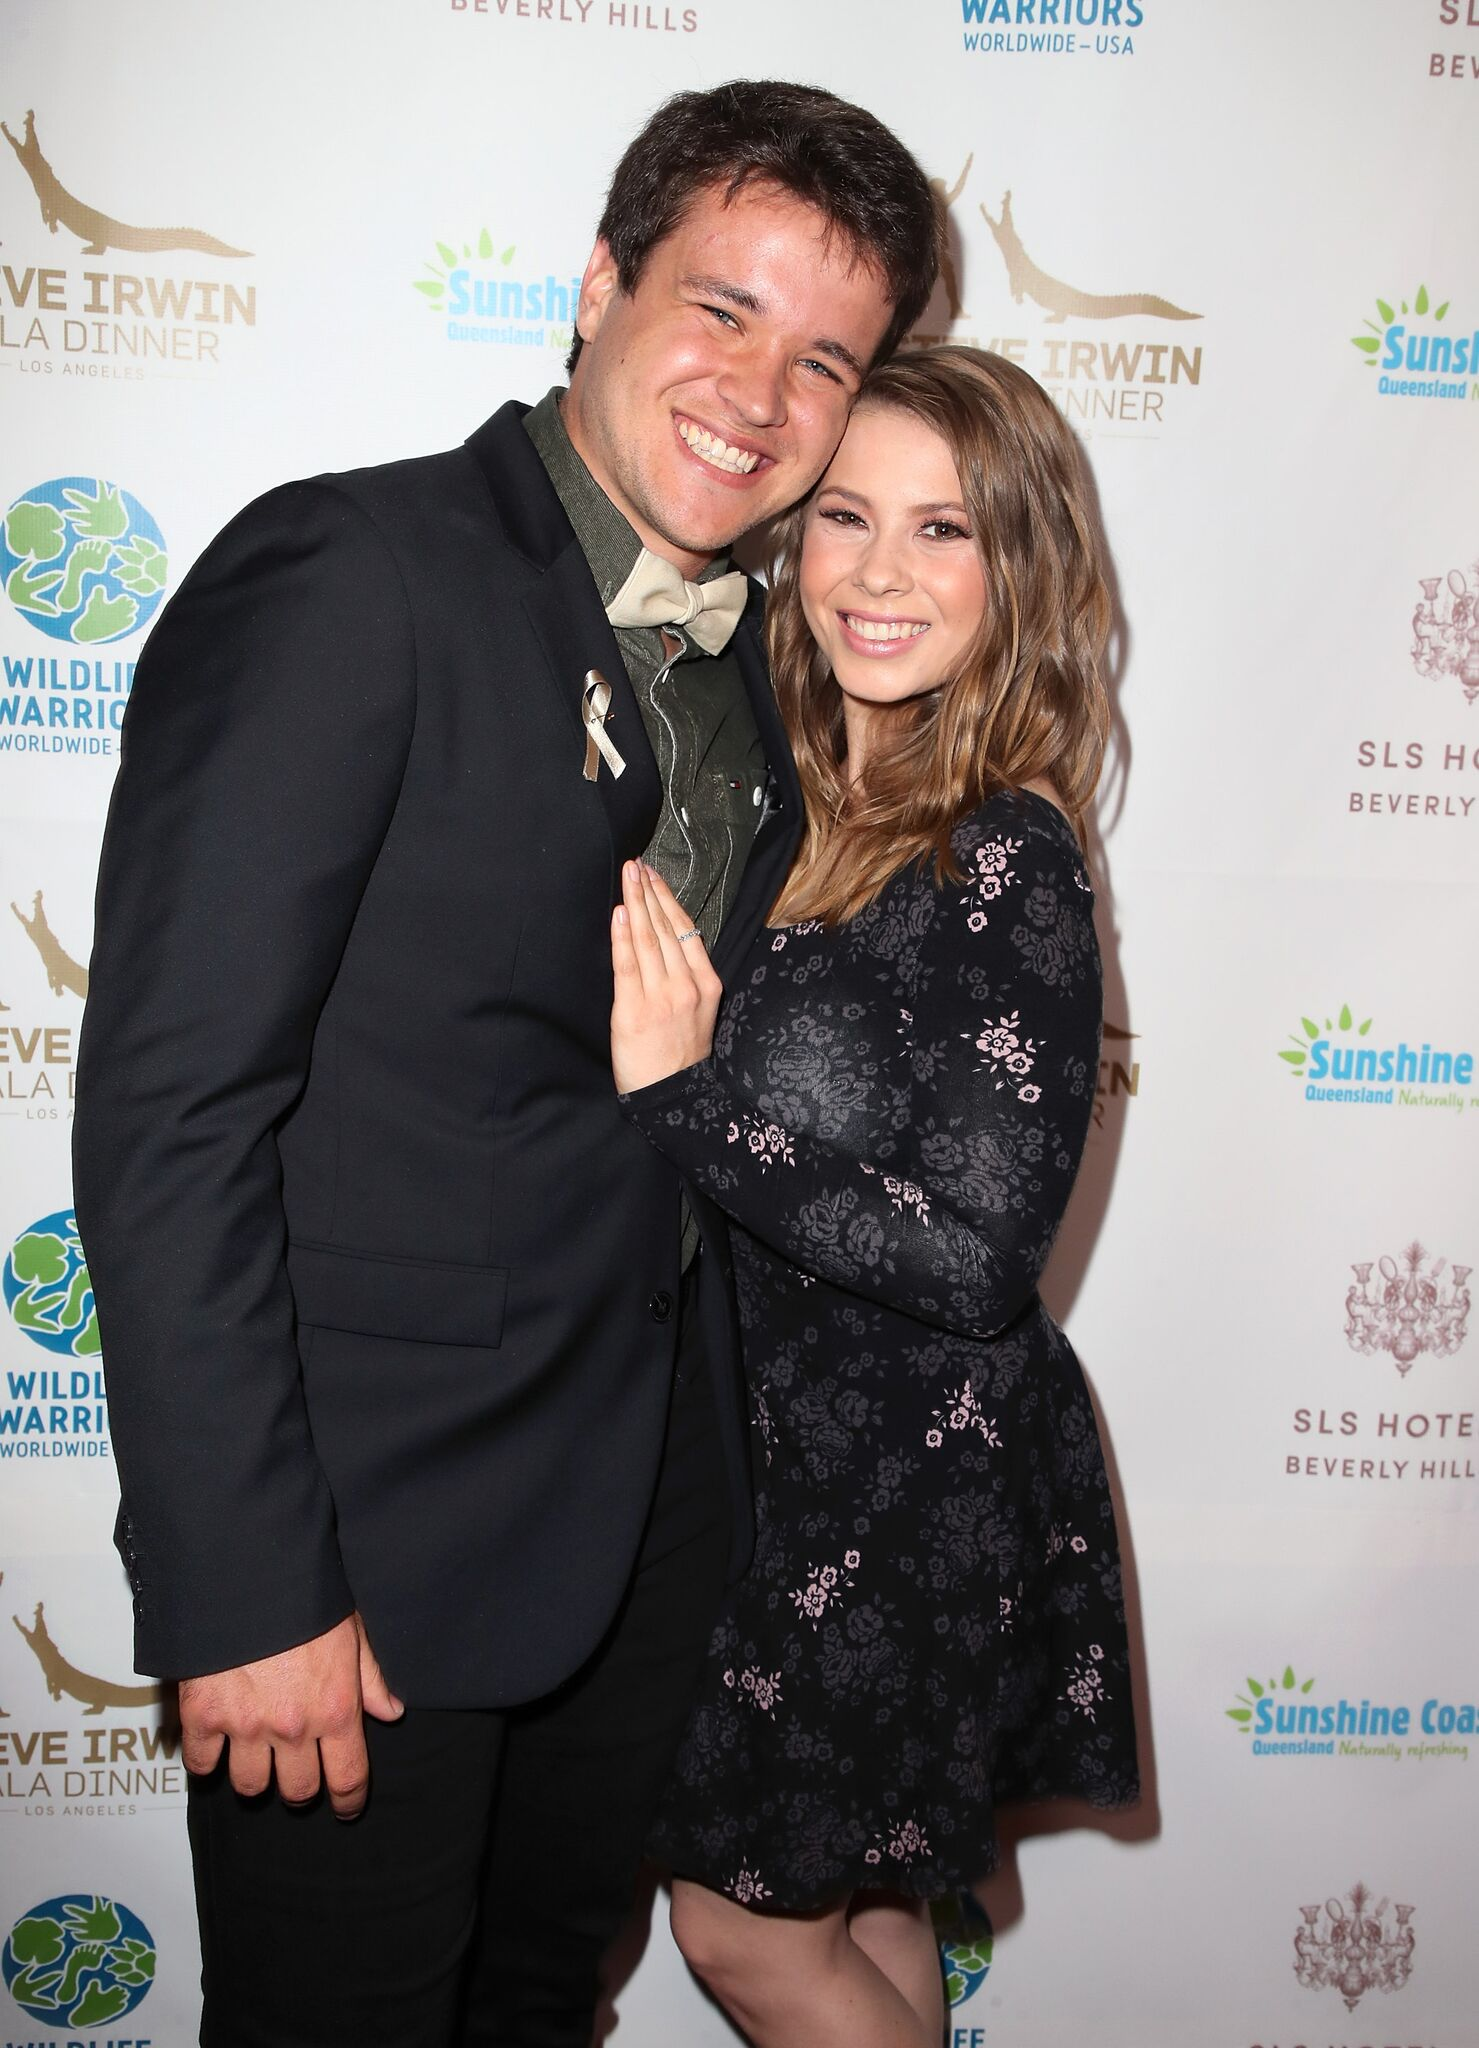 Wakeboarder Chandler Powell (L) and conservationist/TV personality Bindi Irwin attend the Steve Irwin Gala Dinner on May 05, 2018 | Photo: Getty Images